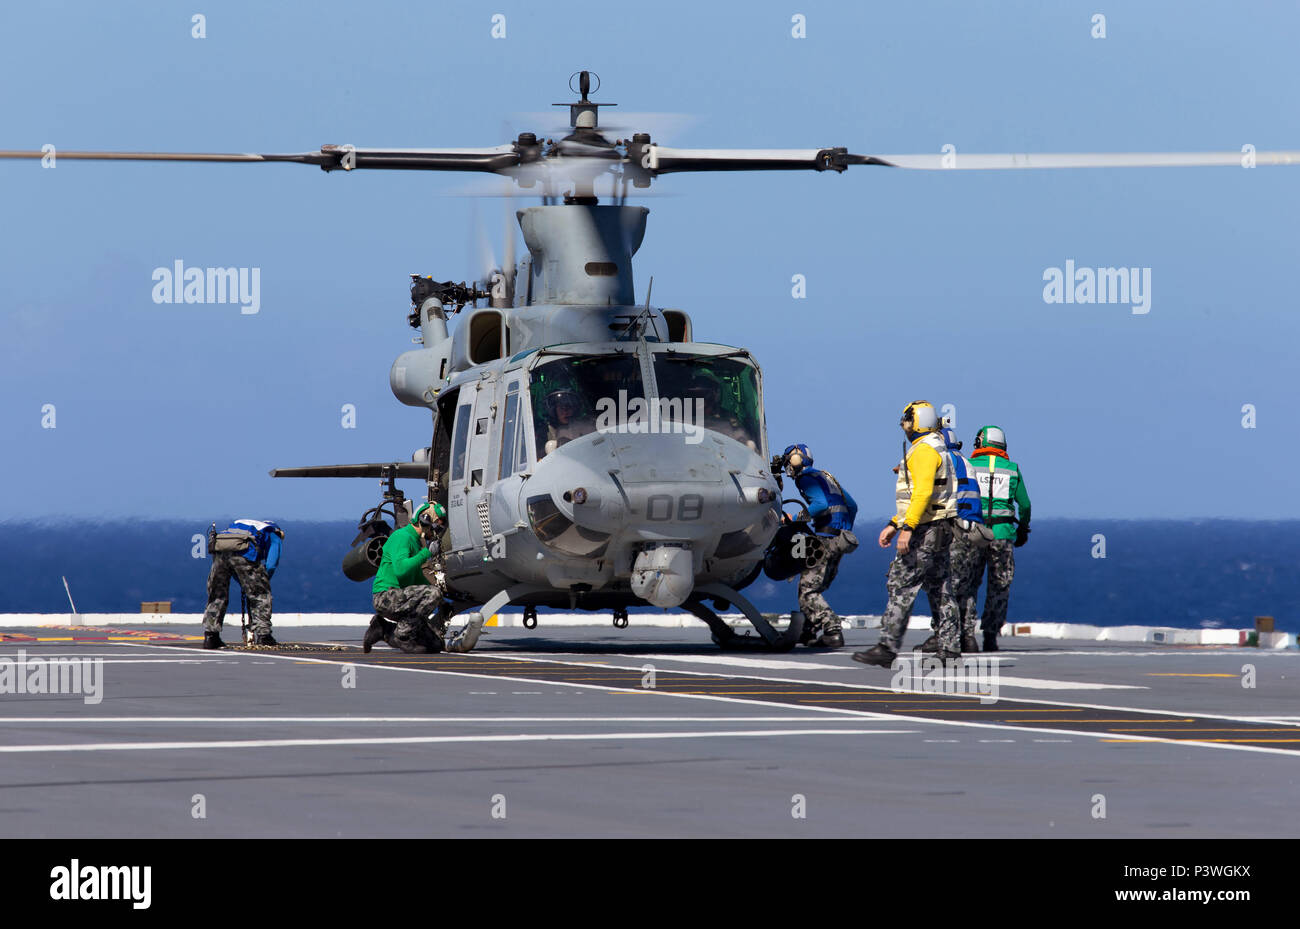 HMAS Canberra's flight deck crew secure a United States Marine Corps UH-1Y Venom medium utility helicopter on the flight deck of HMAS Canberra during Exercise Rim of the Pacific (RIMPAC) 2016. Rim of the Pacific (RIMPAC) is a U.S. Pacific Fleet-hosted biennial multinational maritime exercise designed to foster and sustain international cooperation on the security of the world's oceans. (Australian Defence Force photo by POIS Yuri Ramsey) - Stock Image